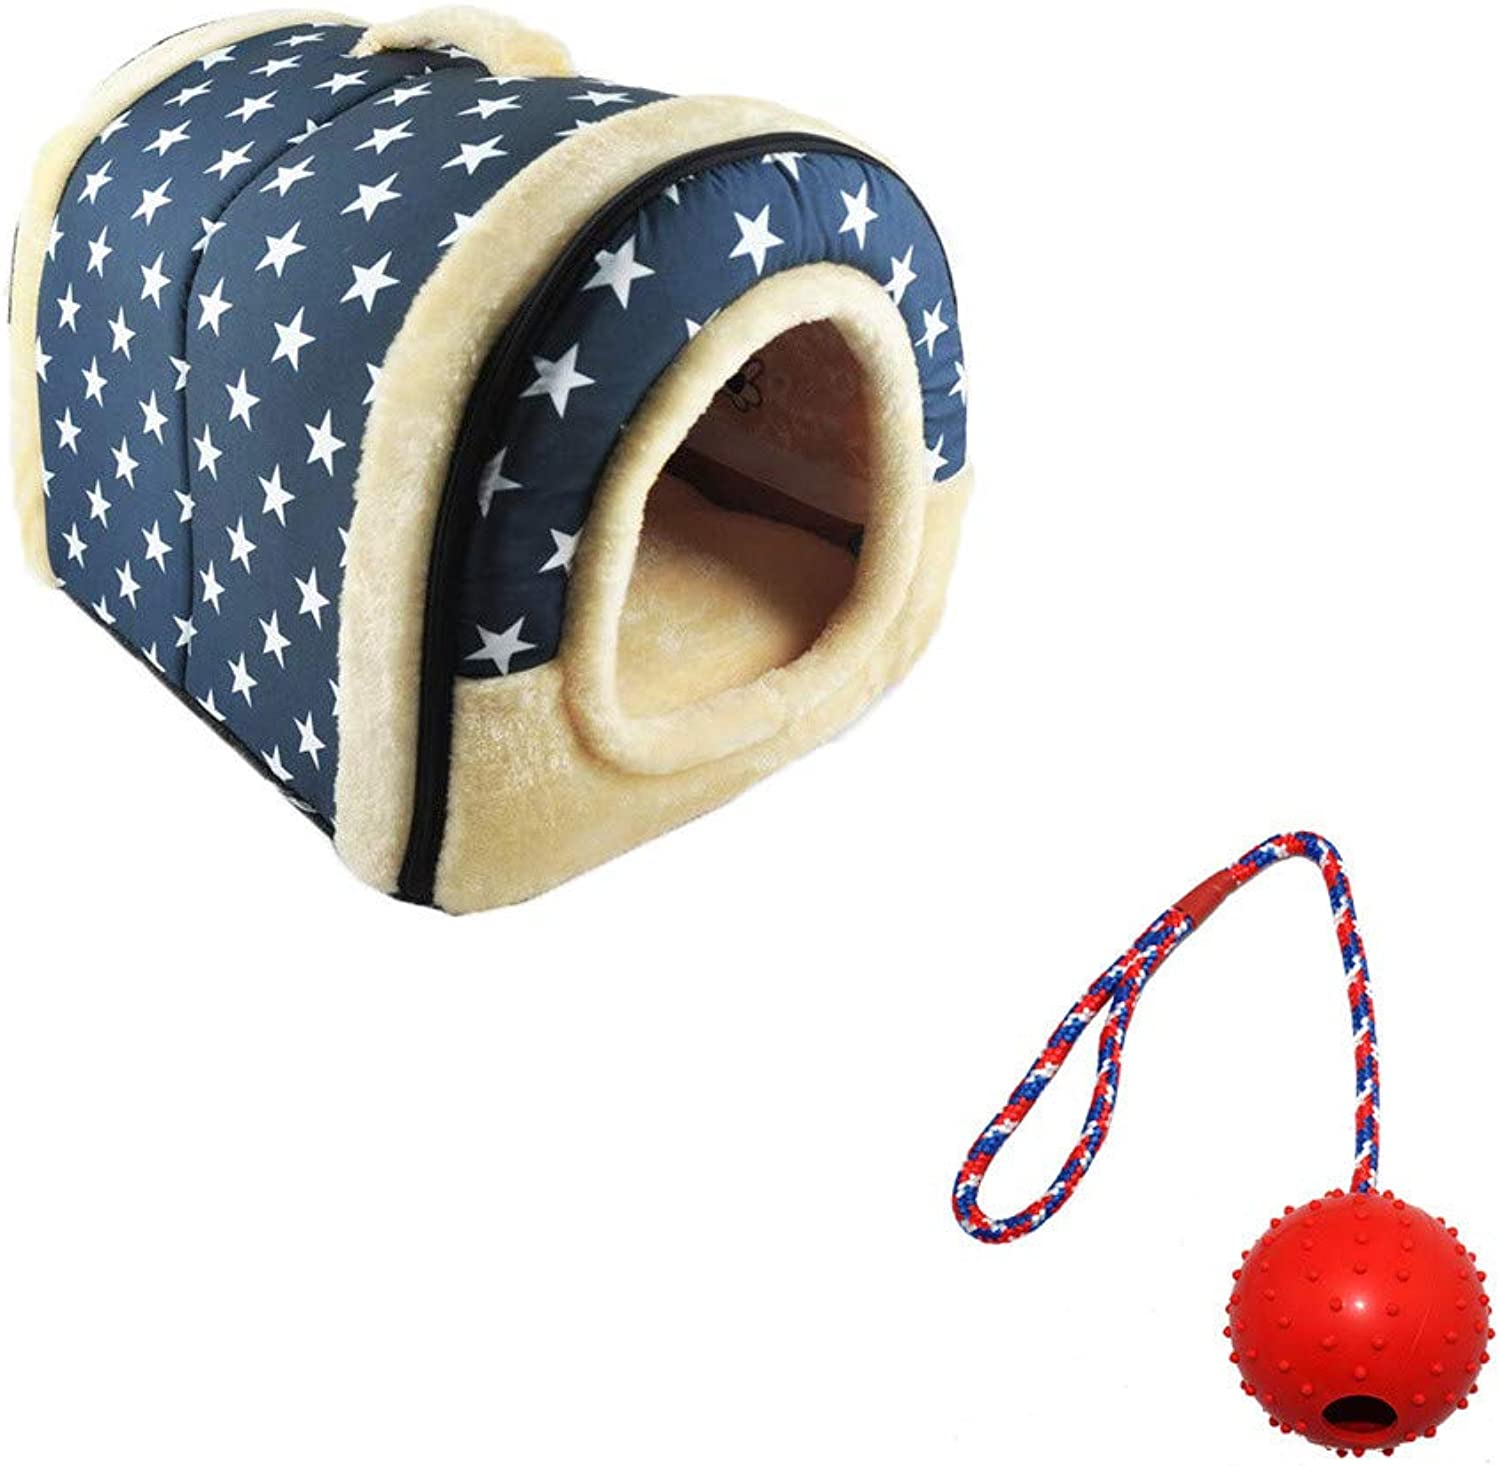 Pet1997 Star blueee 2 in 1 Pet Cat Puppy Rabbit Bed Plus Small Bite Ball 2 in 1 Home and Sofa for Dog Bed Cat Puppy Rabbit Pet Warm Soft Warm Pet Bed